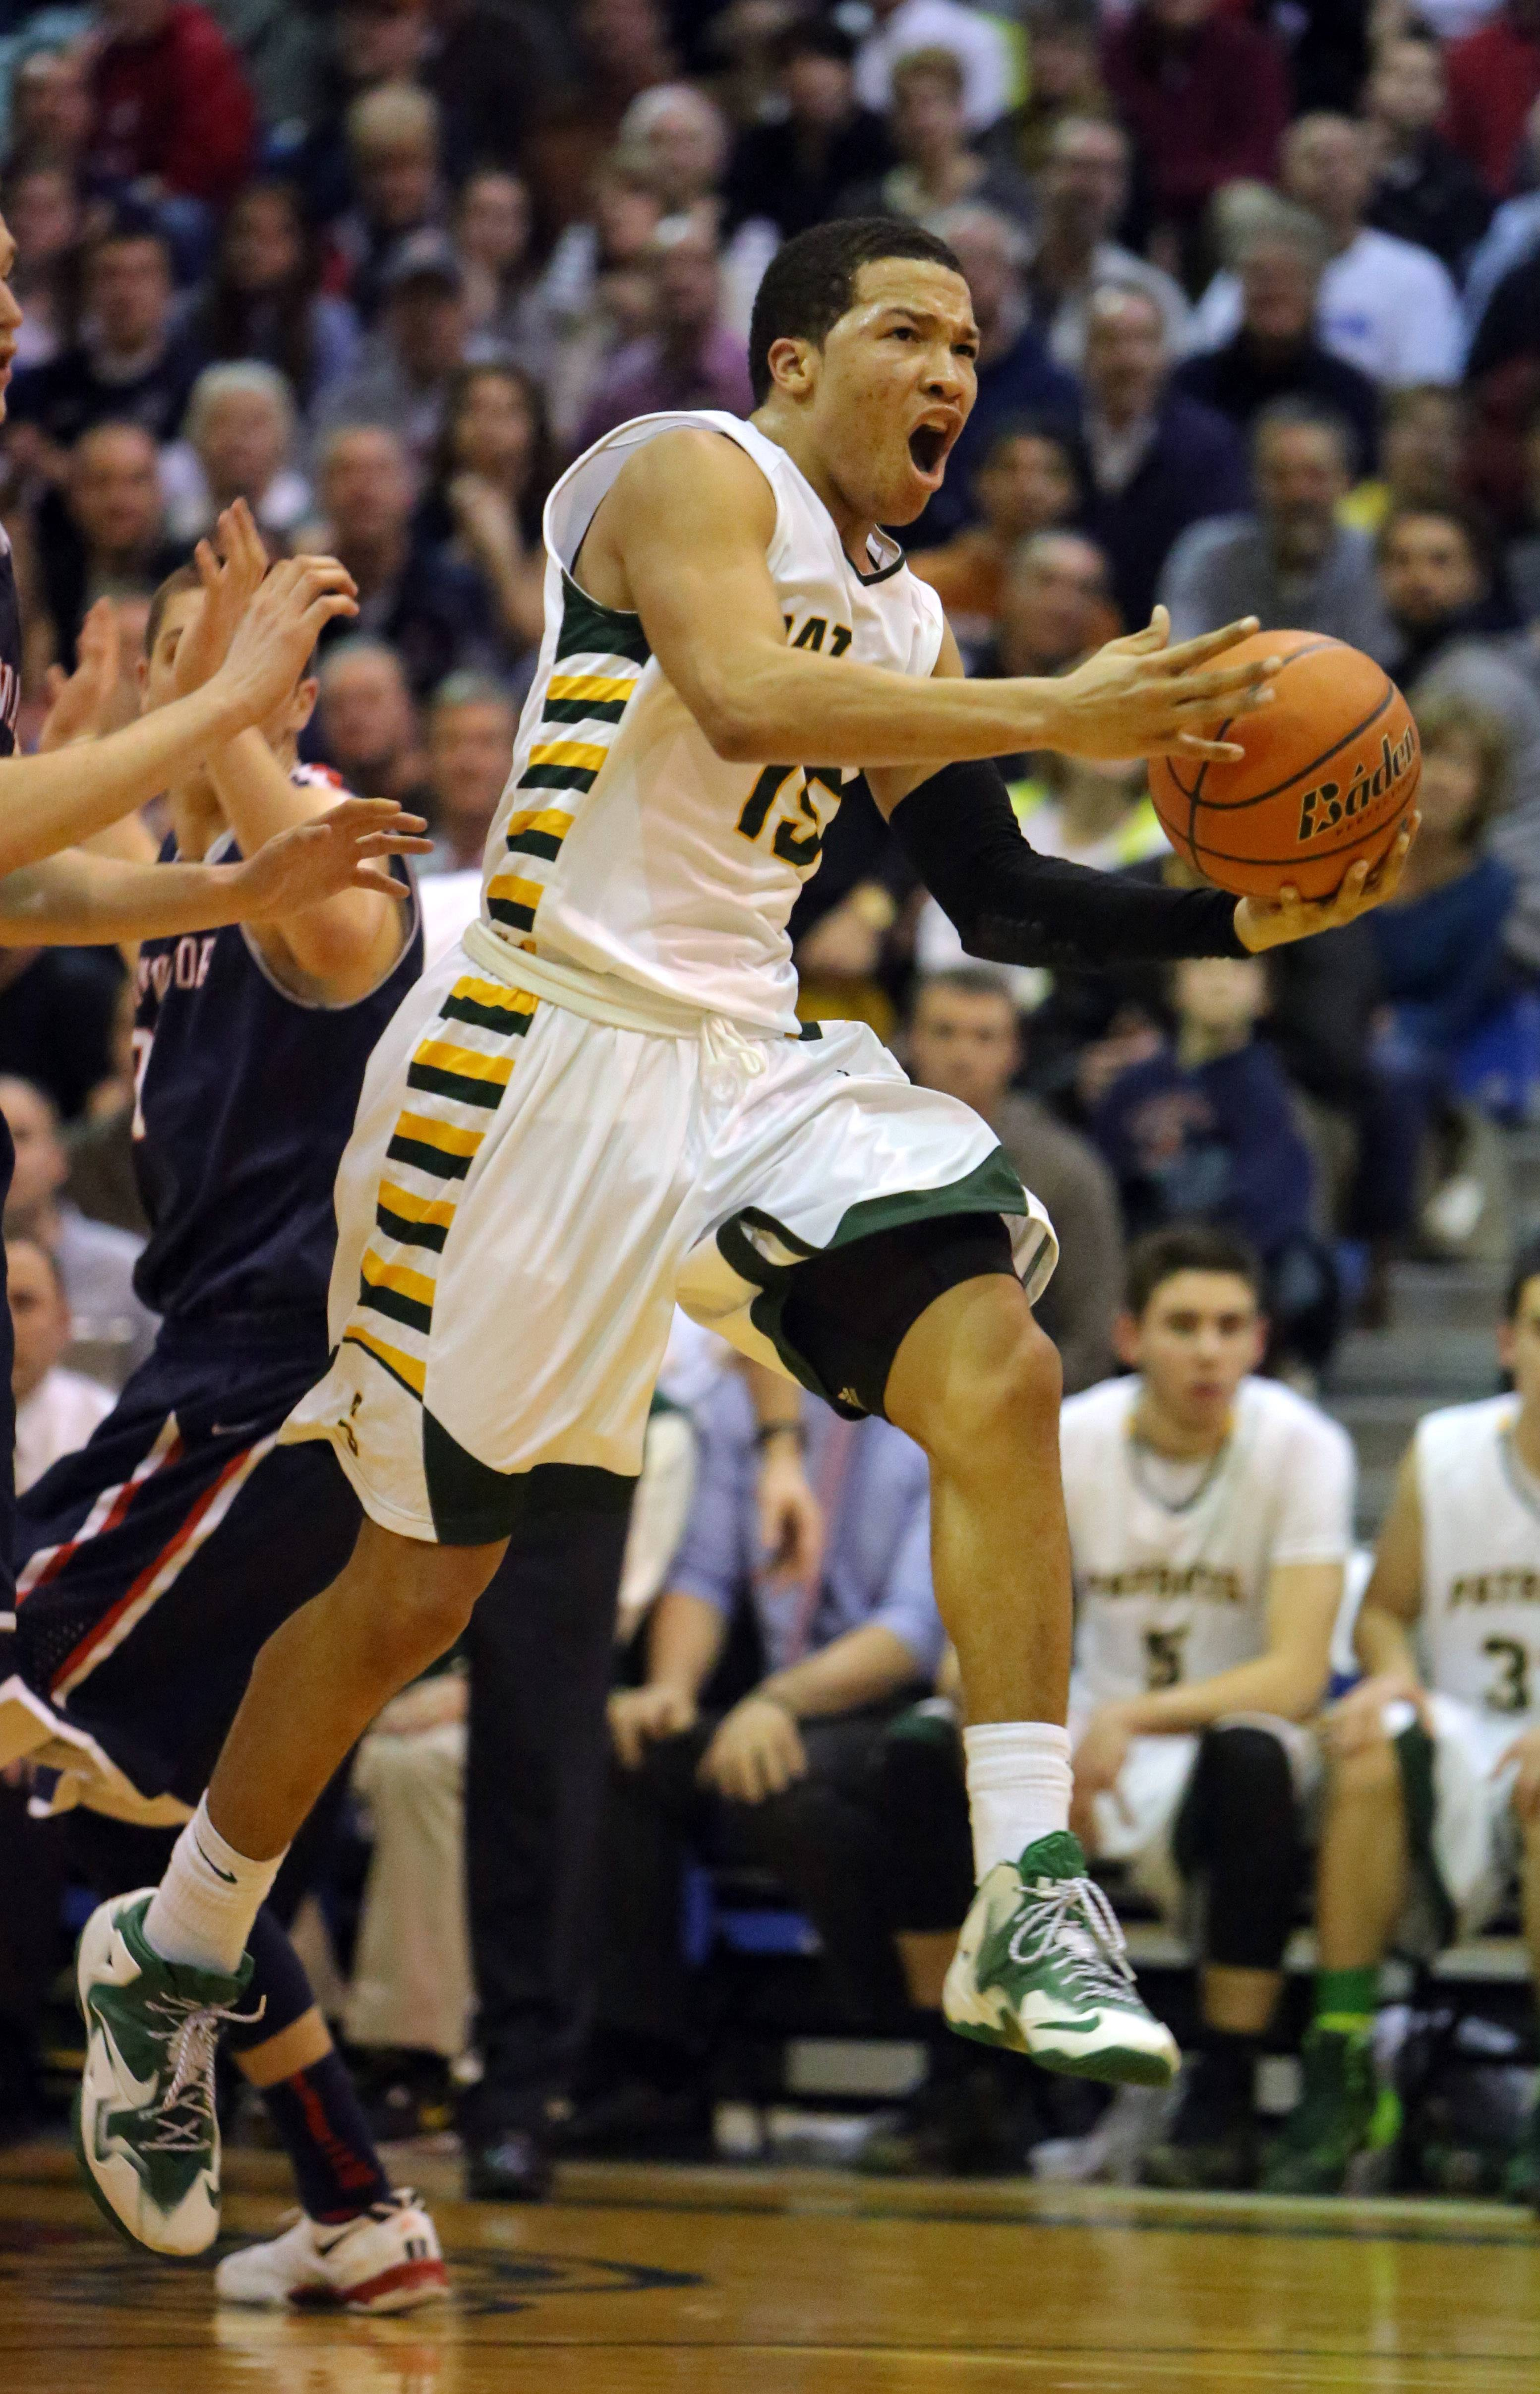 Stevenson's Jalen Brunson drive to the hoop during the Class 4A sectional semifinal at Lake Zurich on Tuesday.